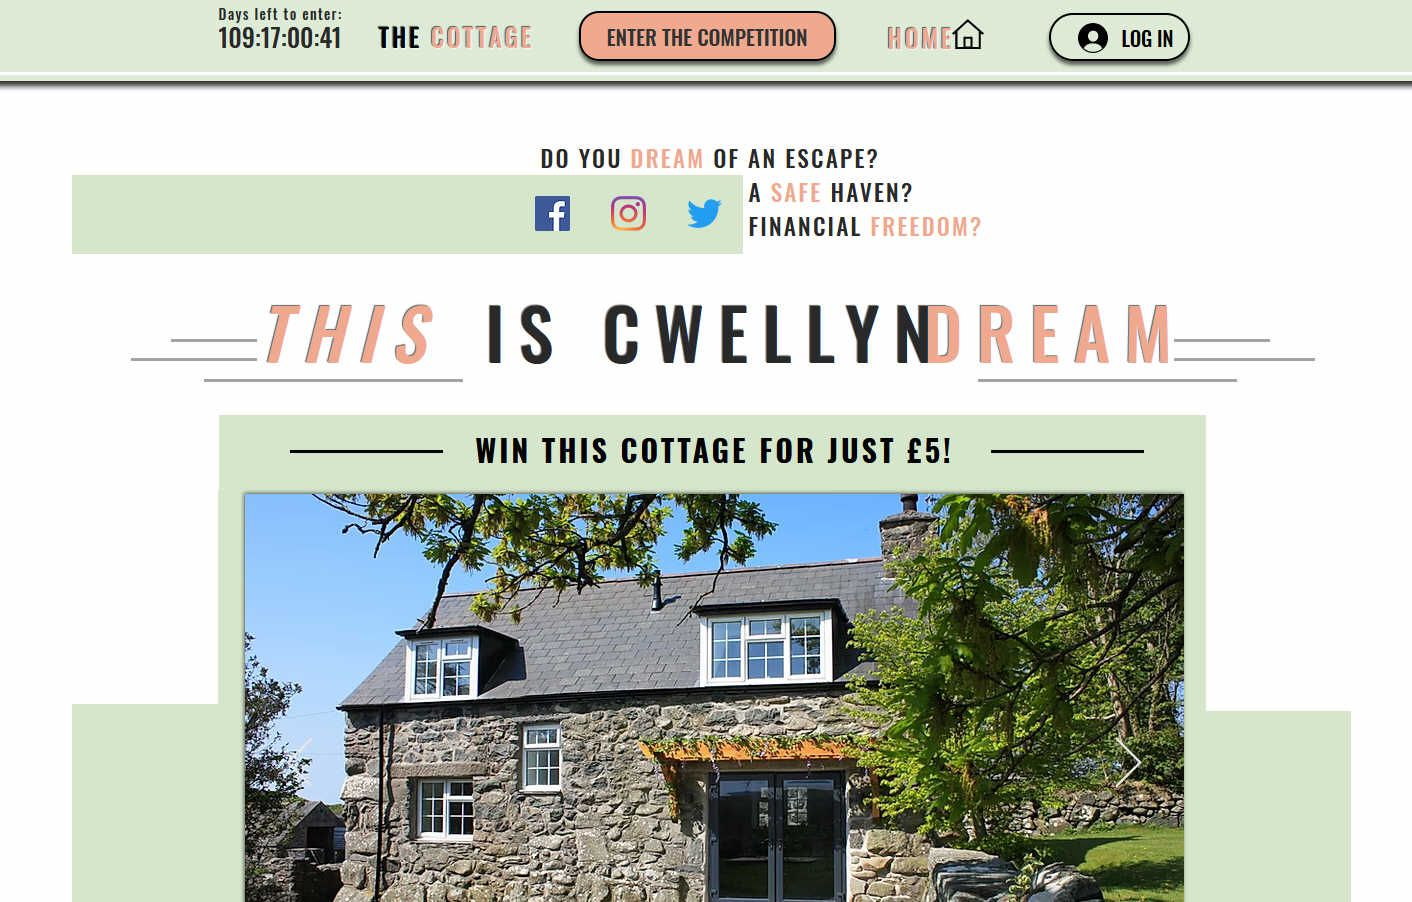 Win a Rural Two Bedroom Stone Cottage in North Wales